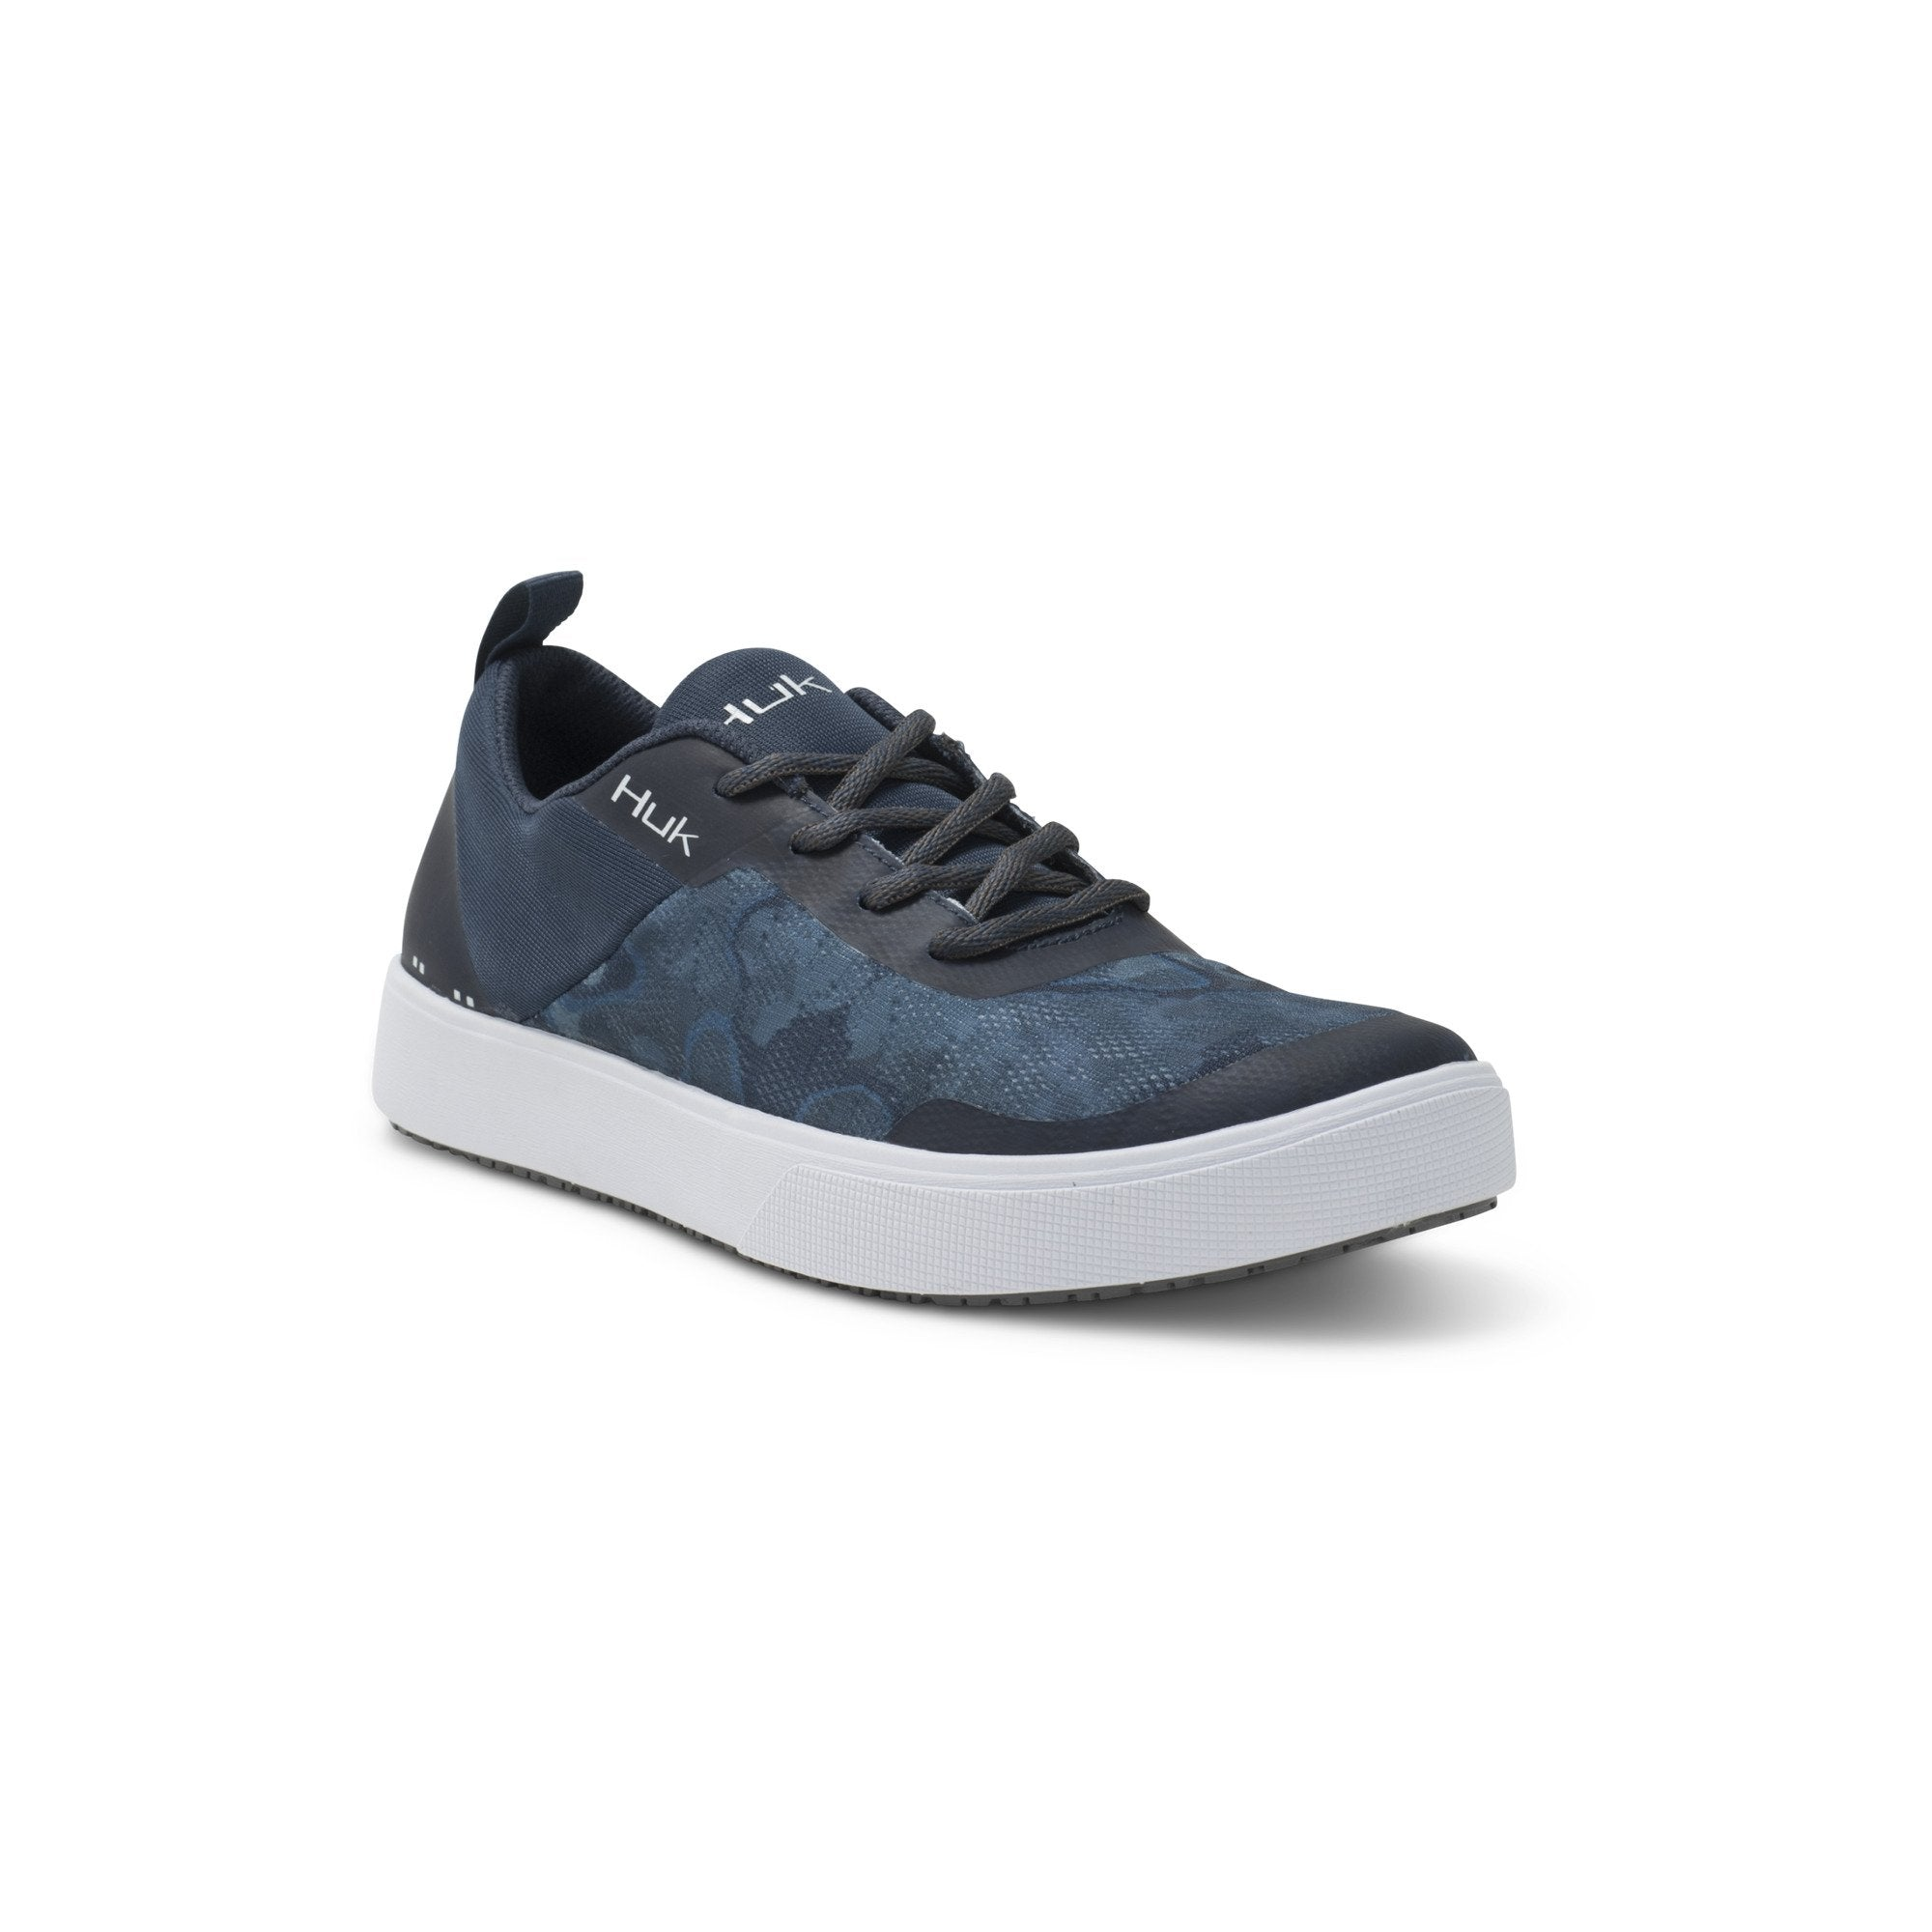 Huk Mahi Lace-up